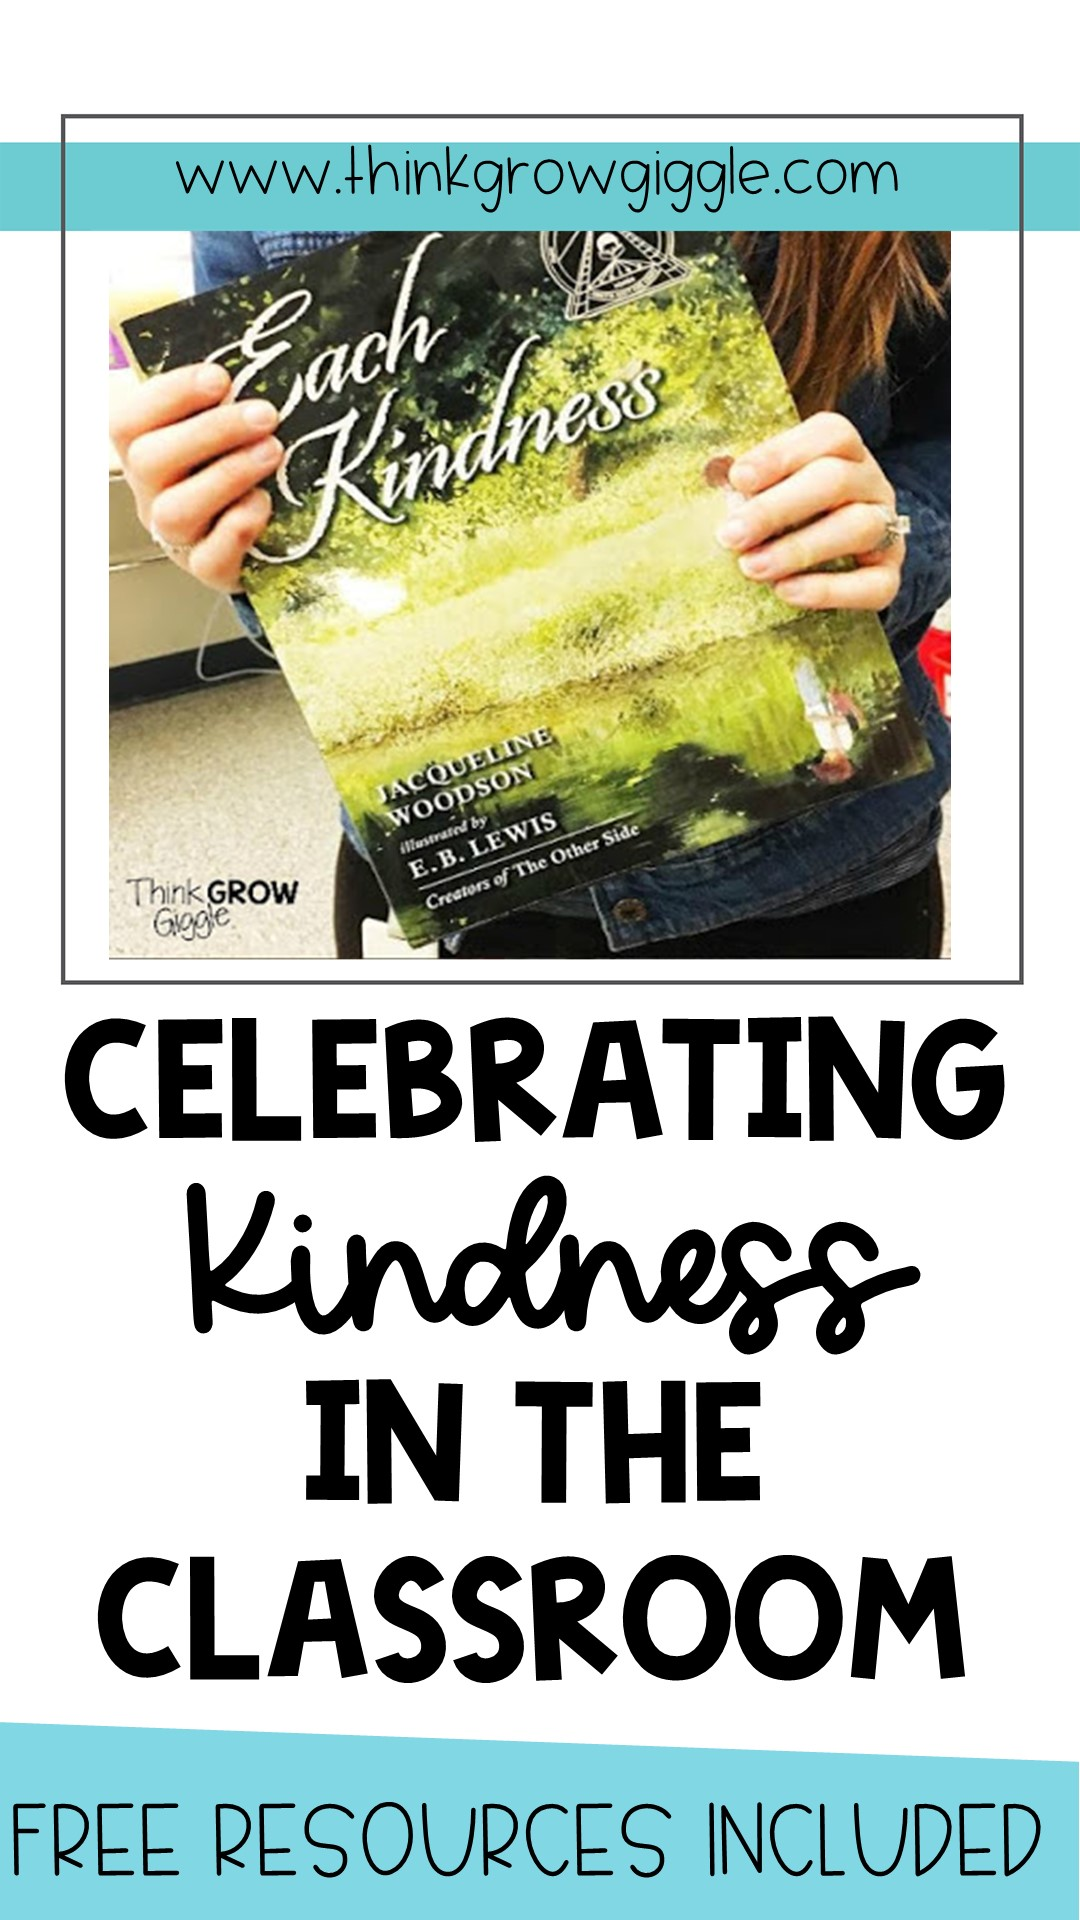 Kindness lessons for the classroom